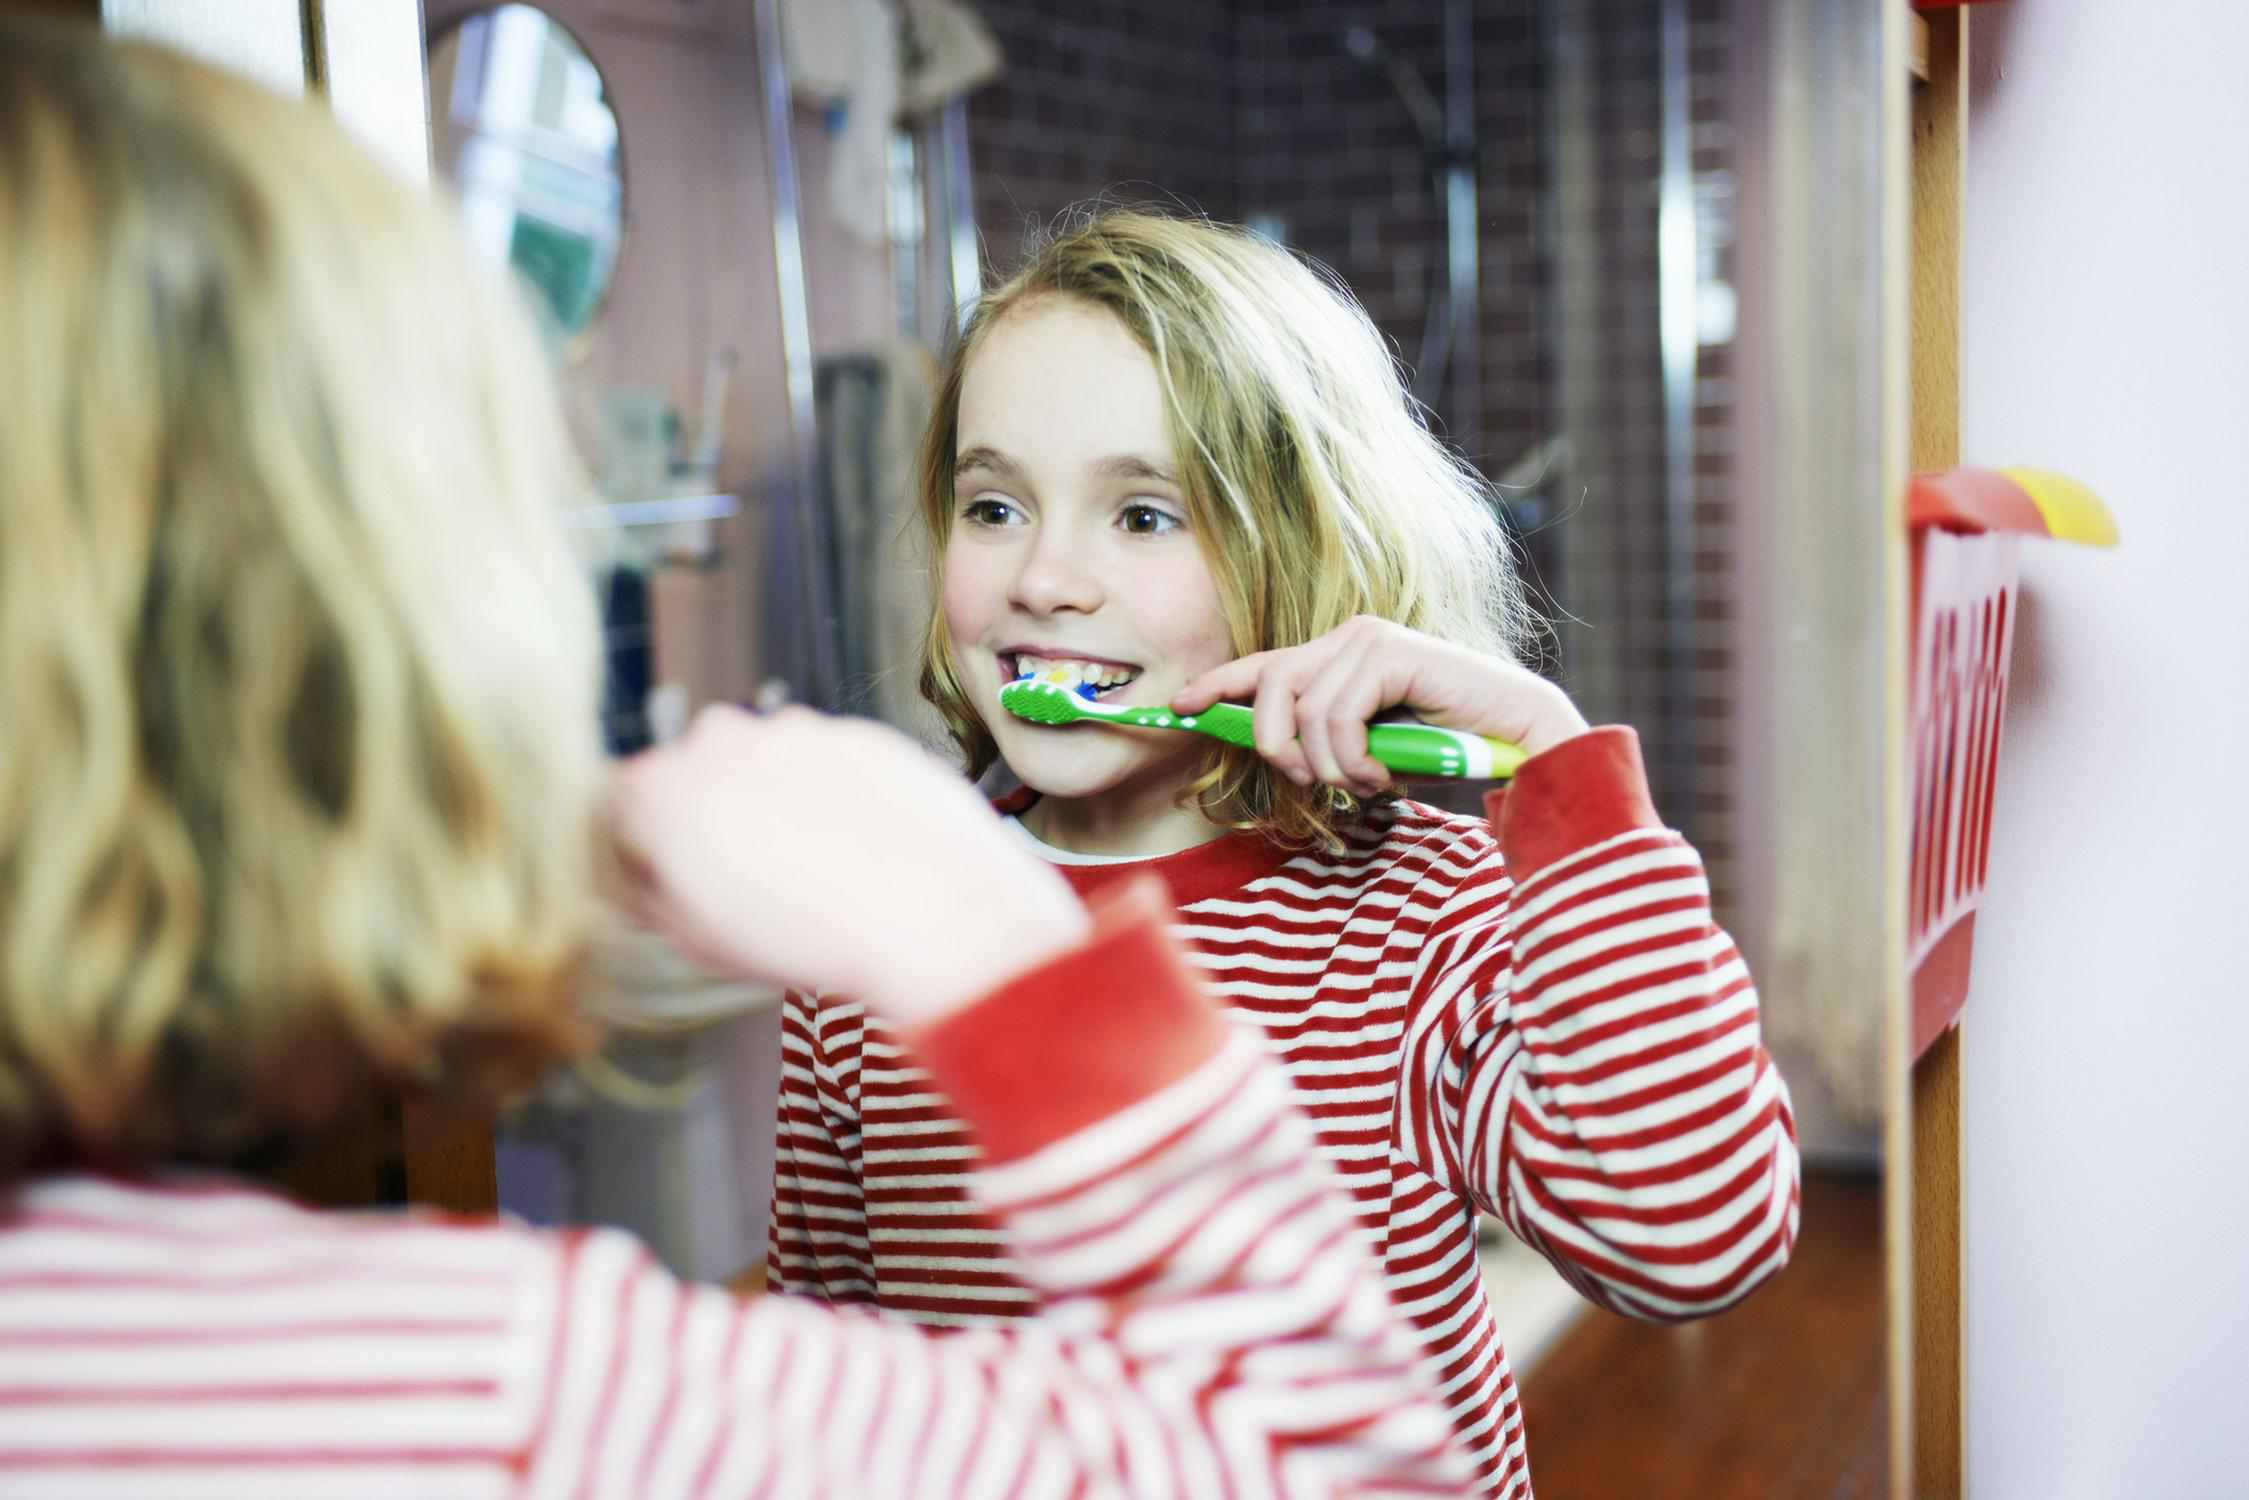 child brushing her teeth in the mirror